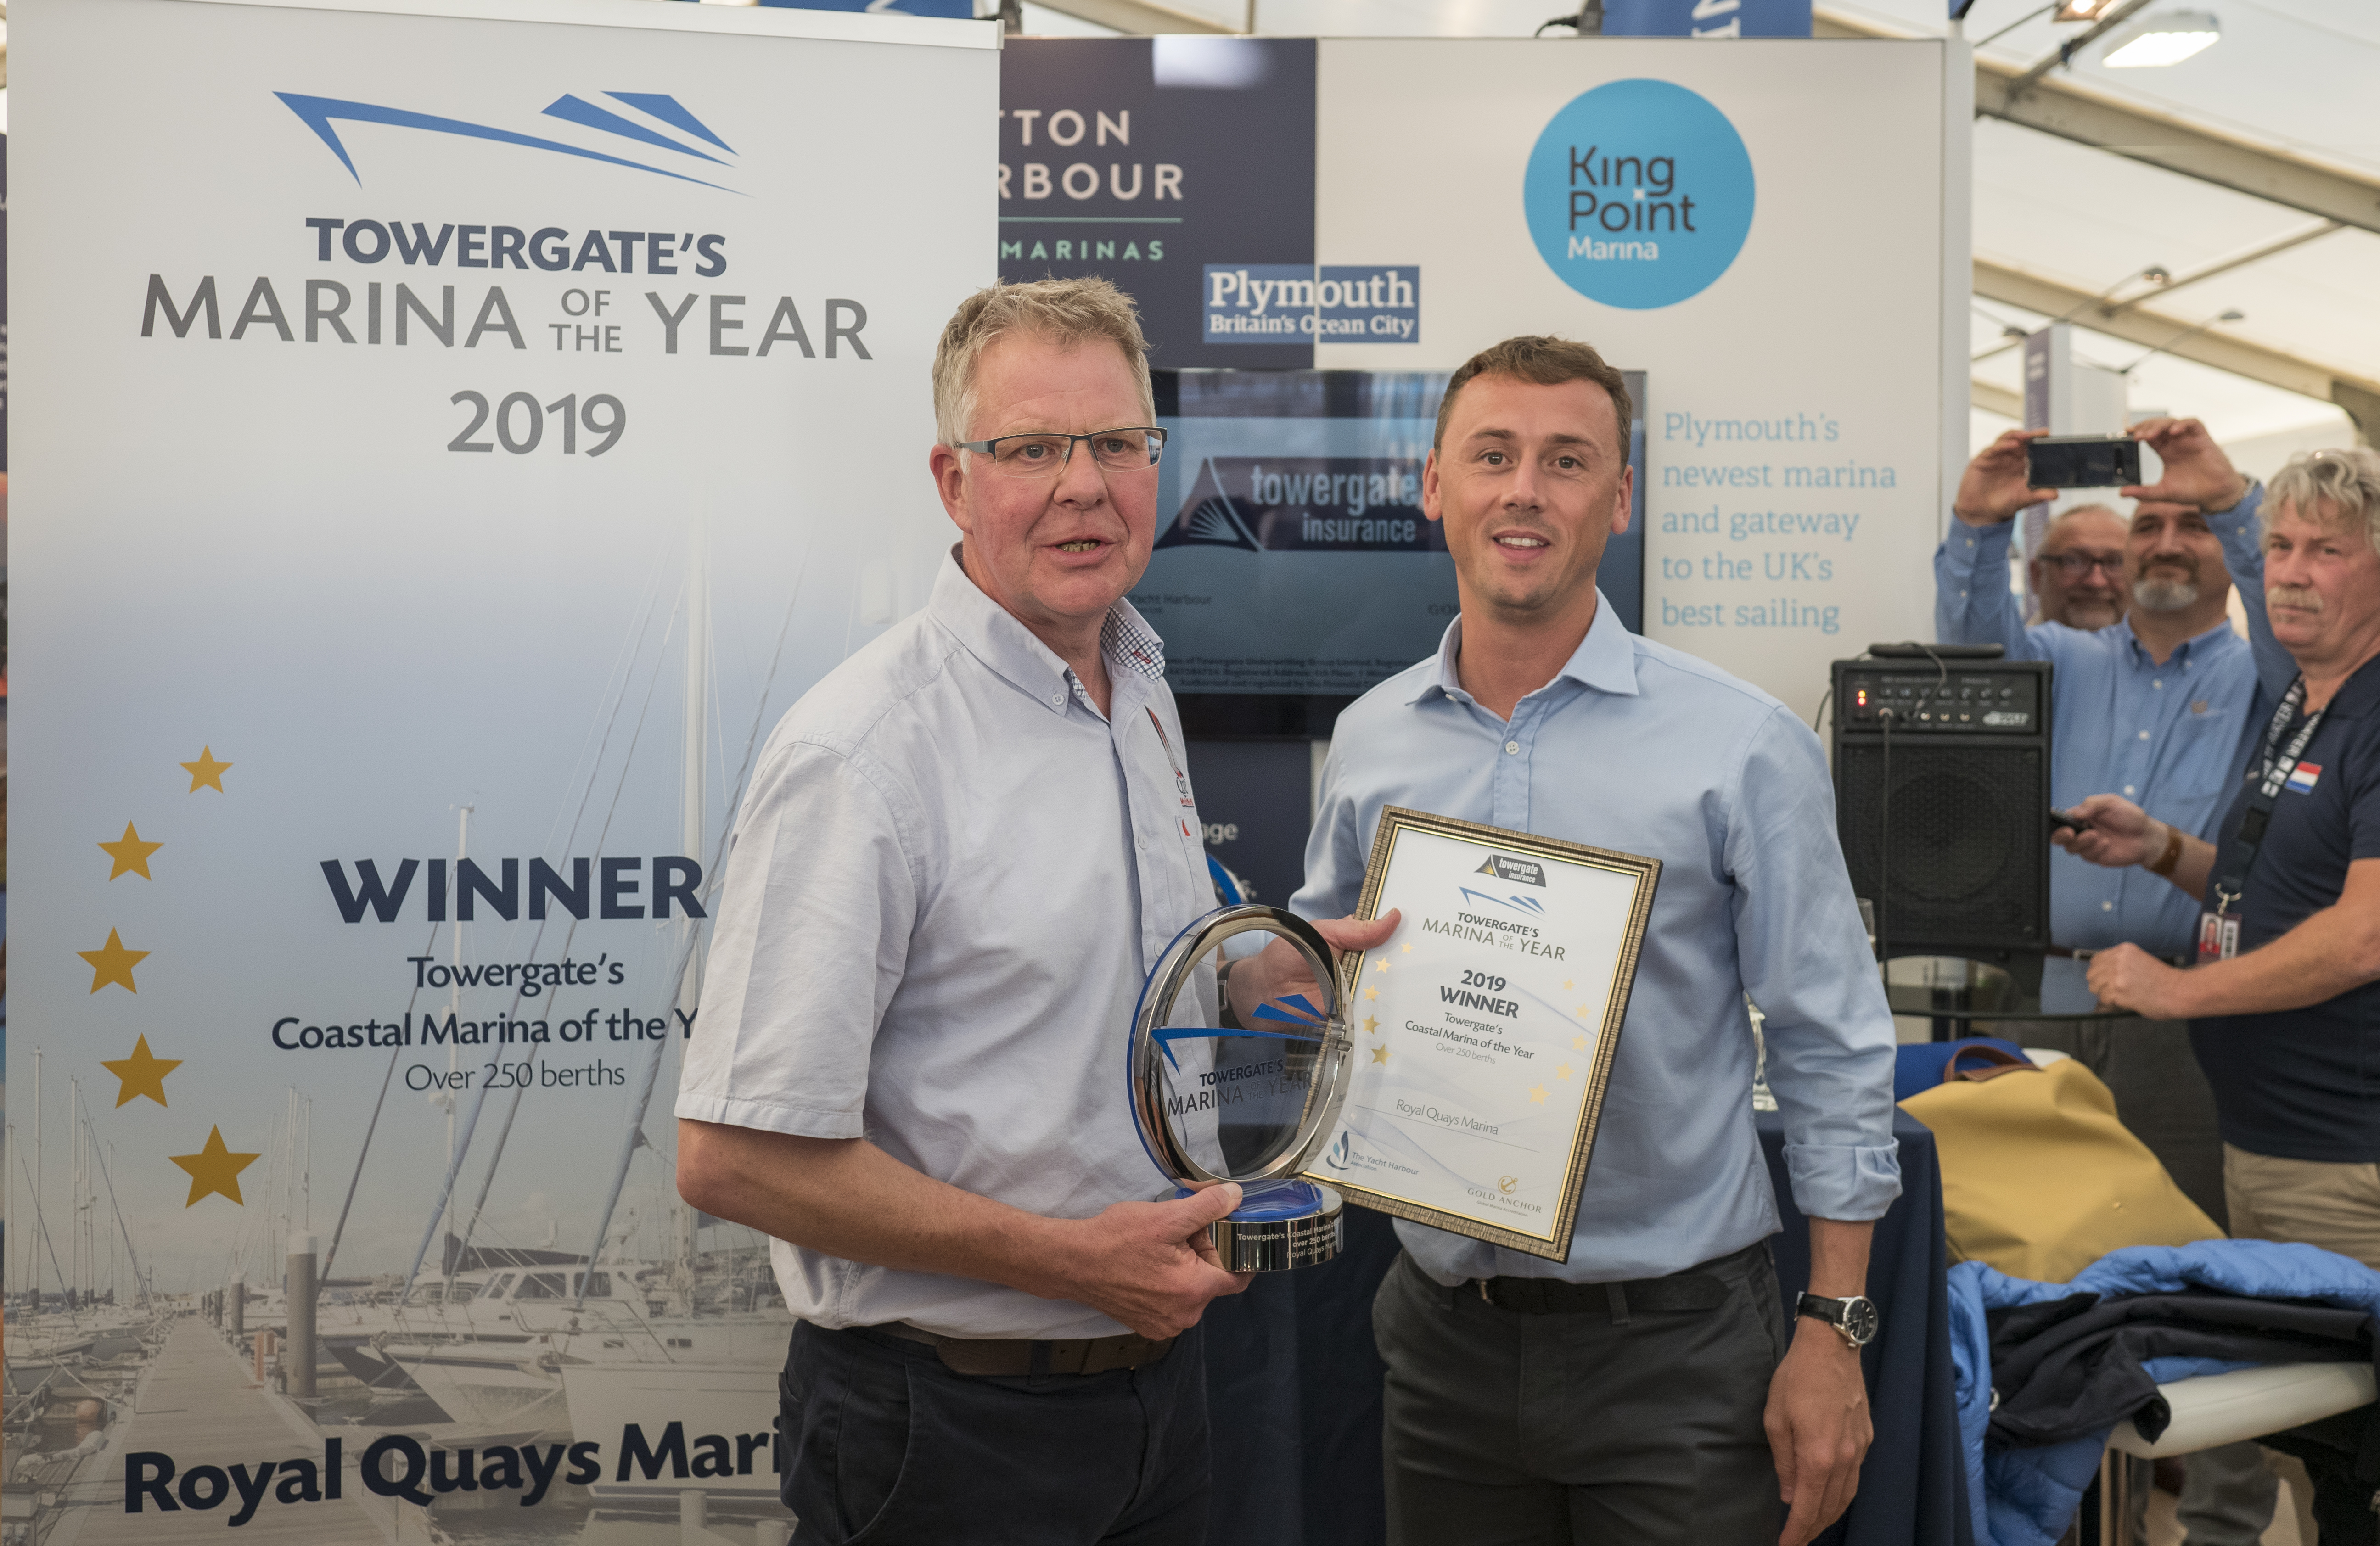 UK Coastal Marina of Year (over 250 berths)